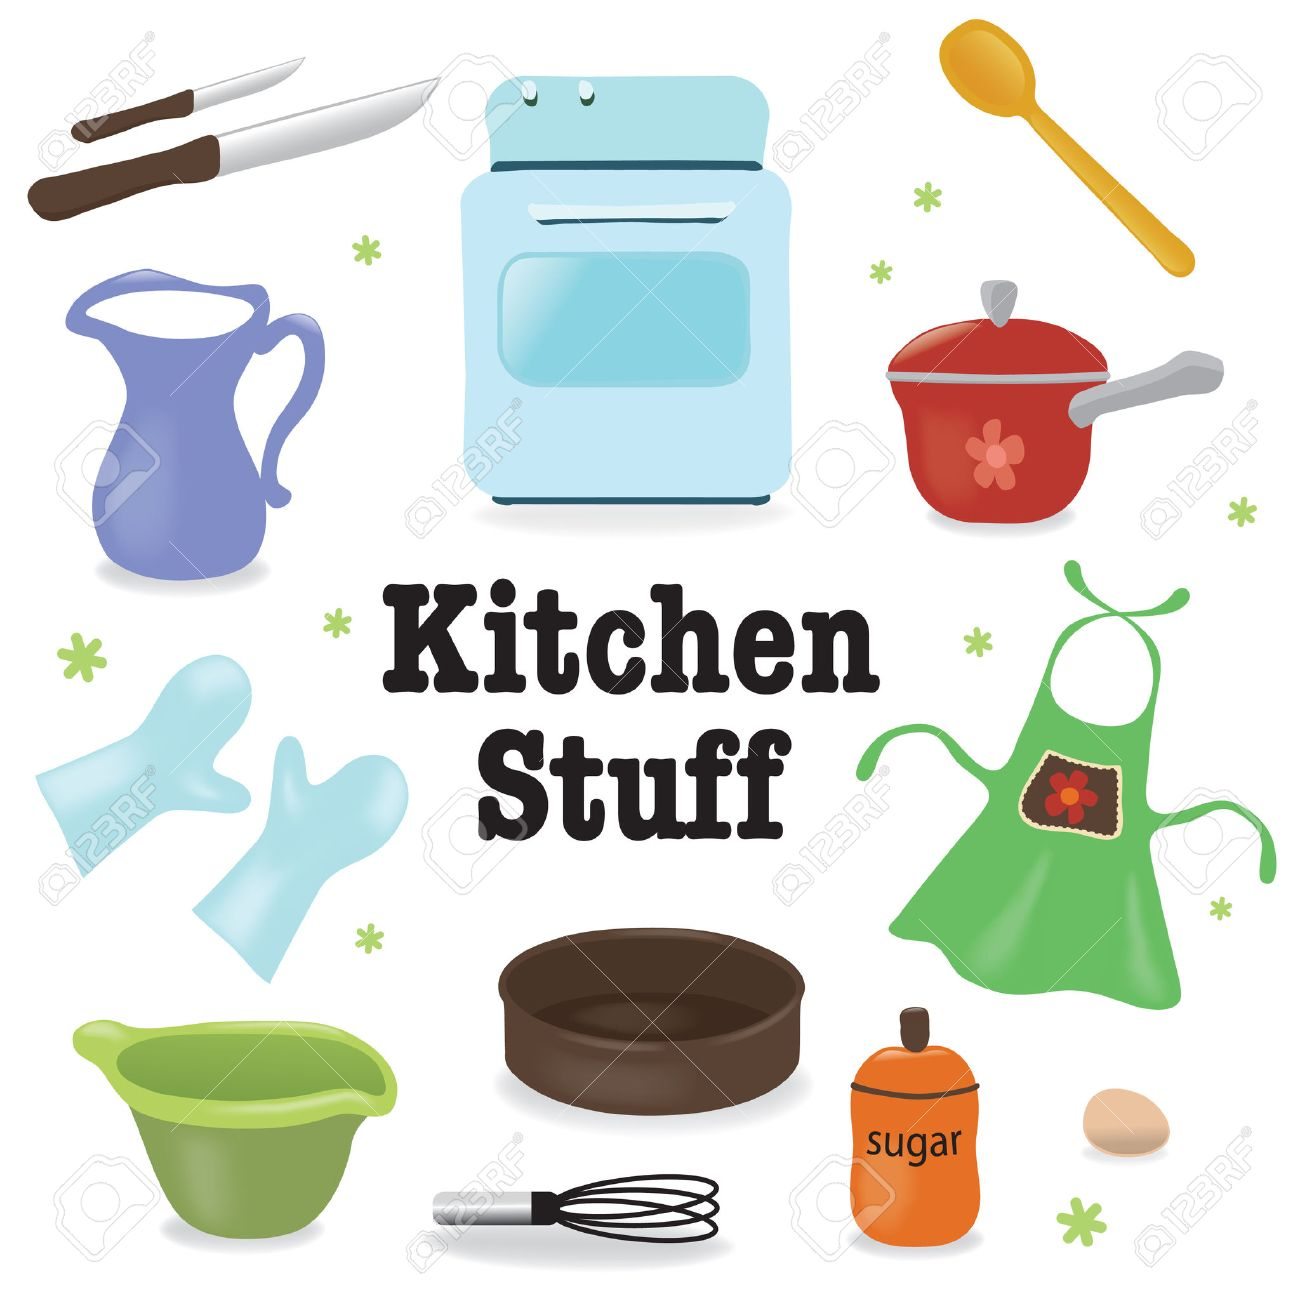 Kitchen stuff Stock Vector - 8790987